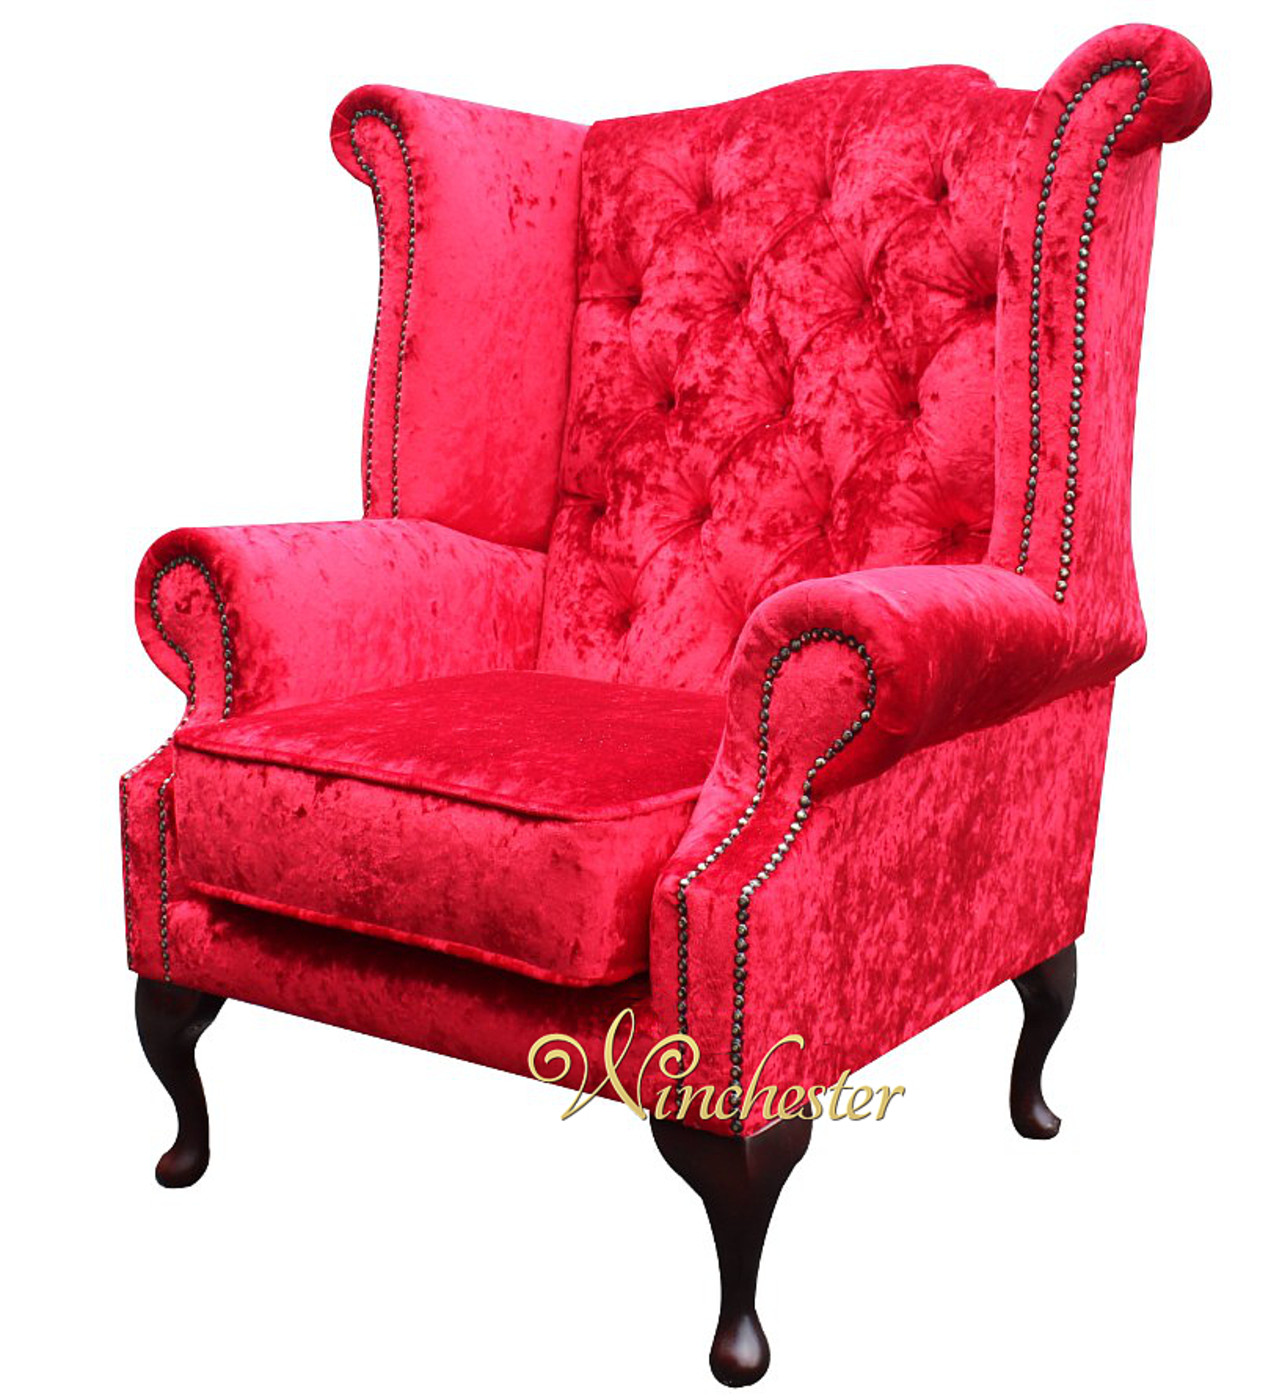 Beautiful Chesterfield Queen Anne Wing Chair Plush Red Velvet Wc